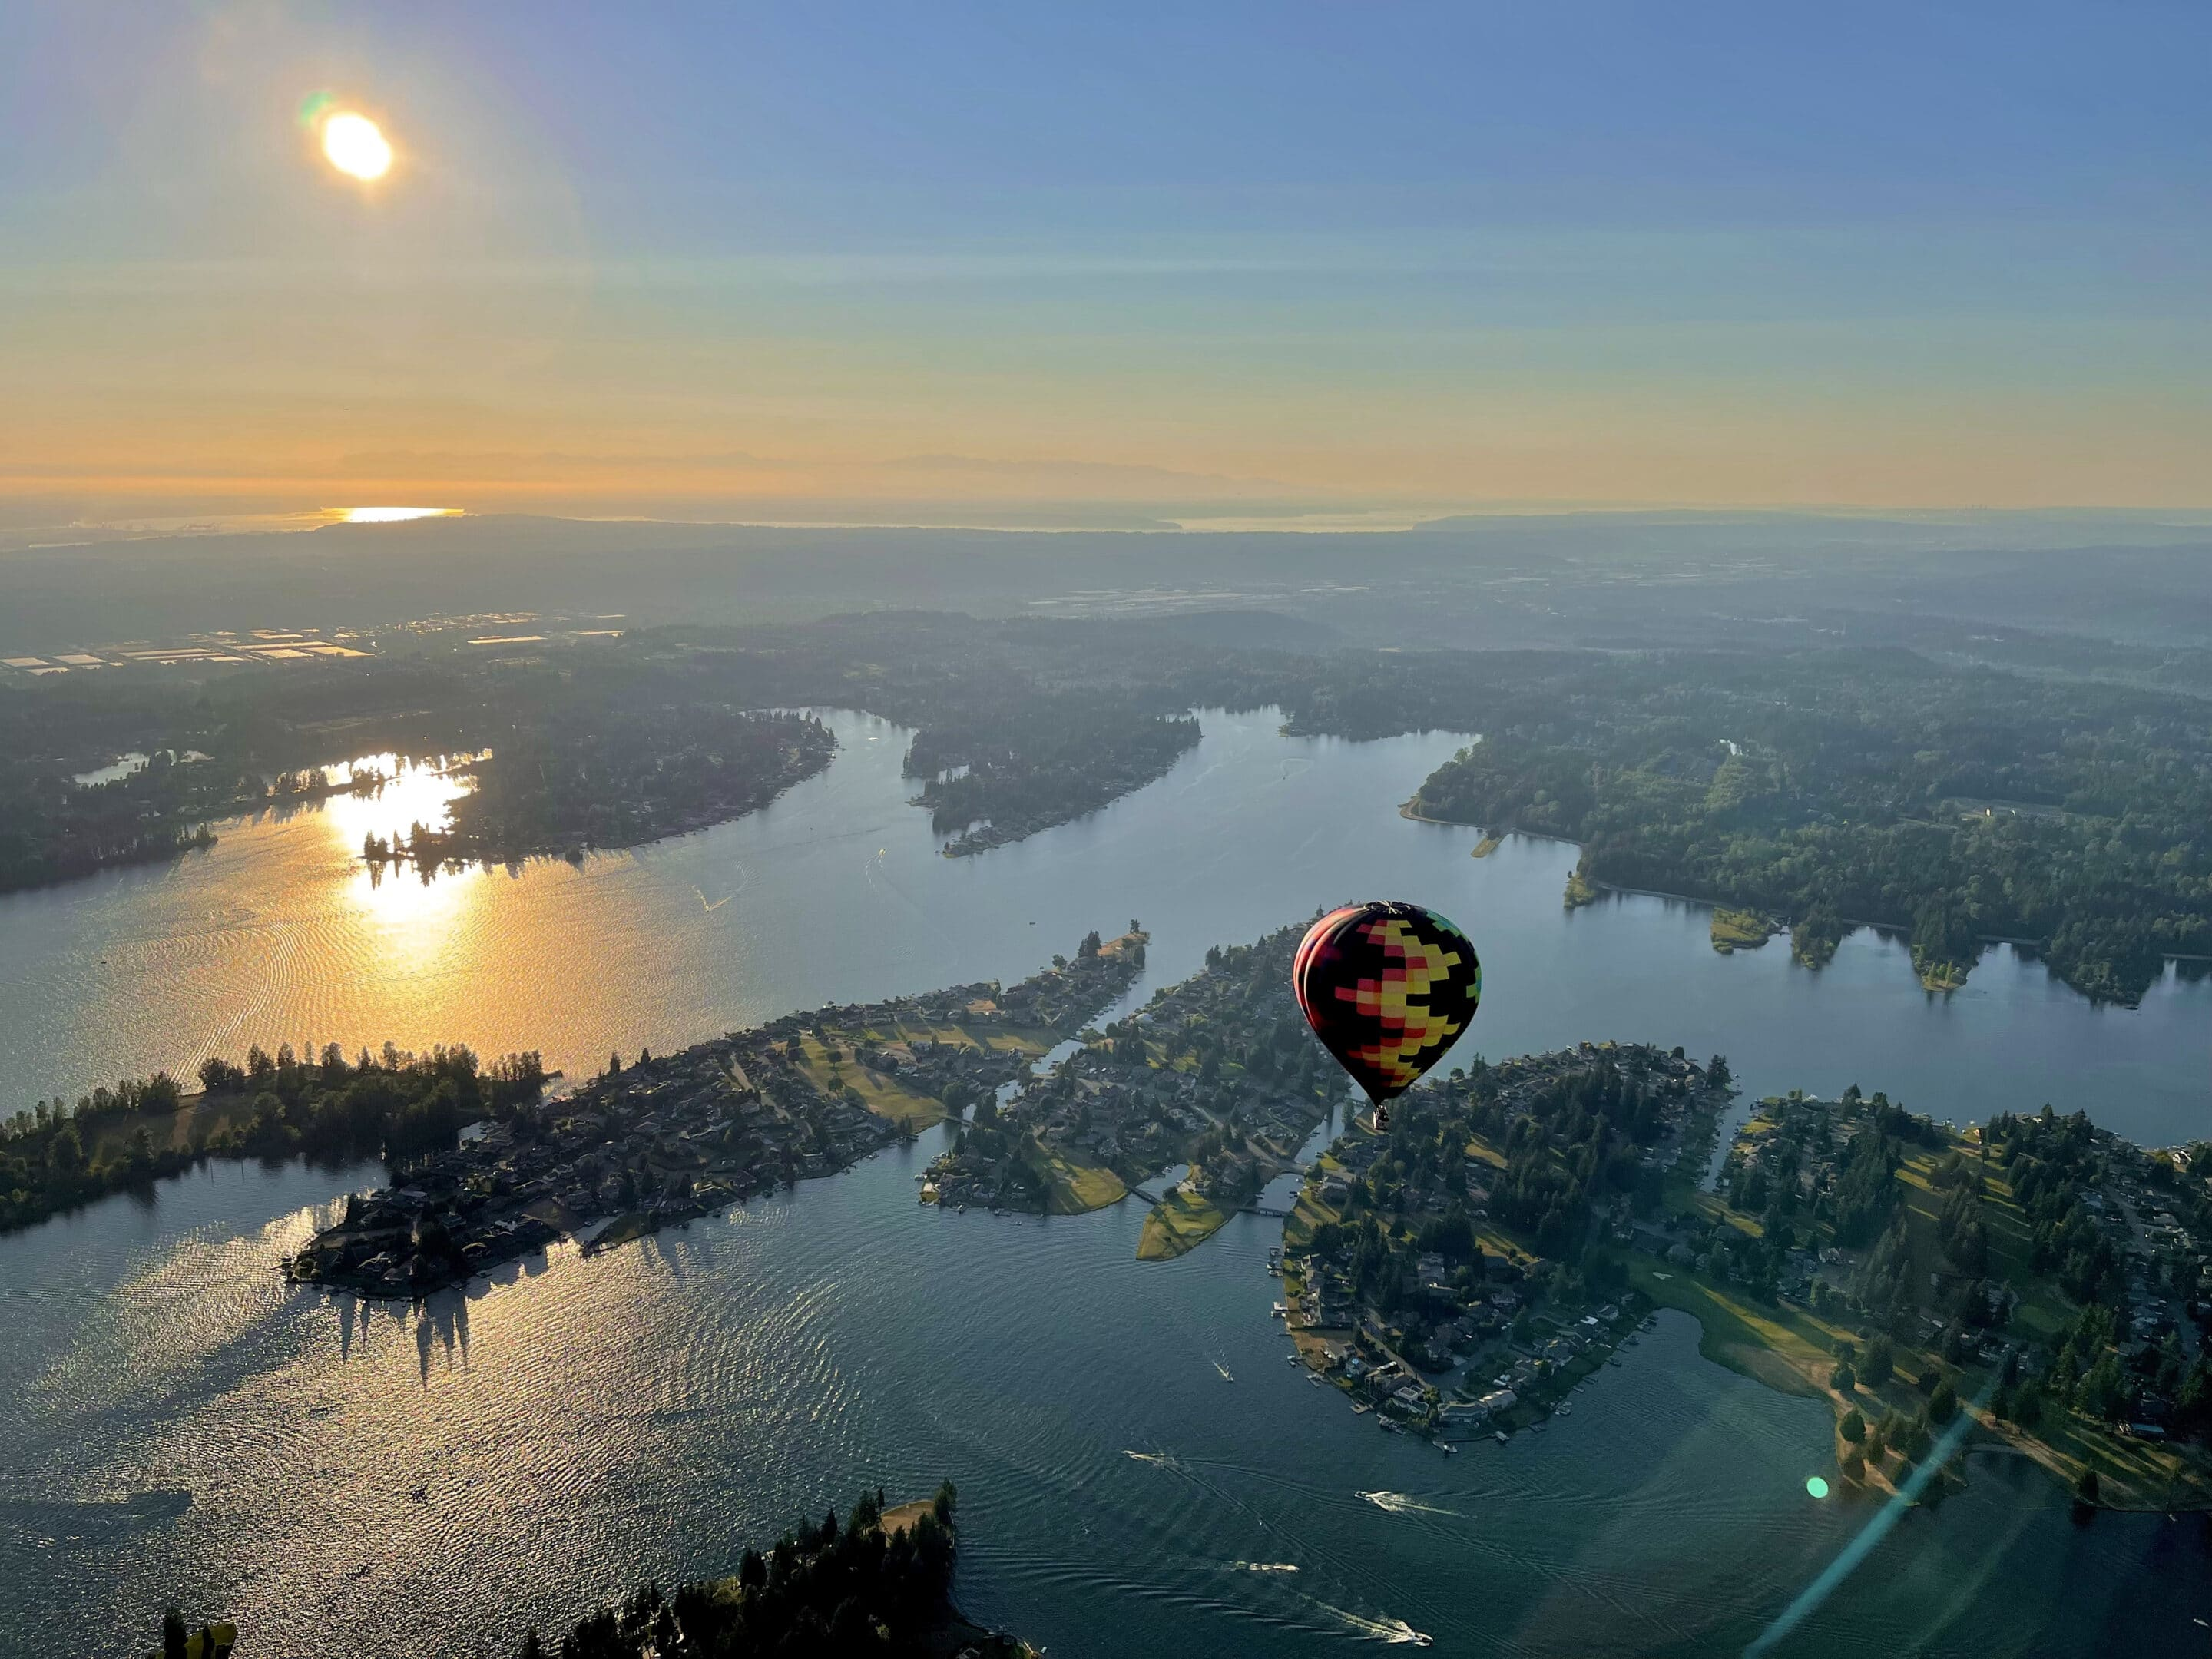 Hot air balloon ride in good weather